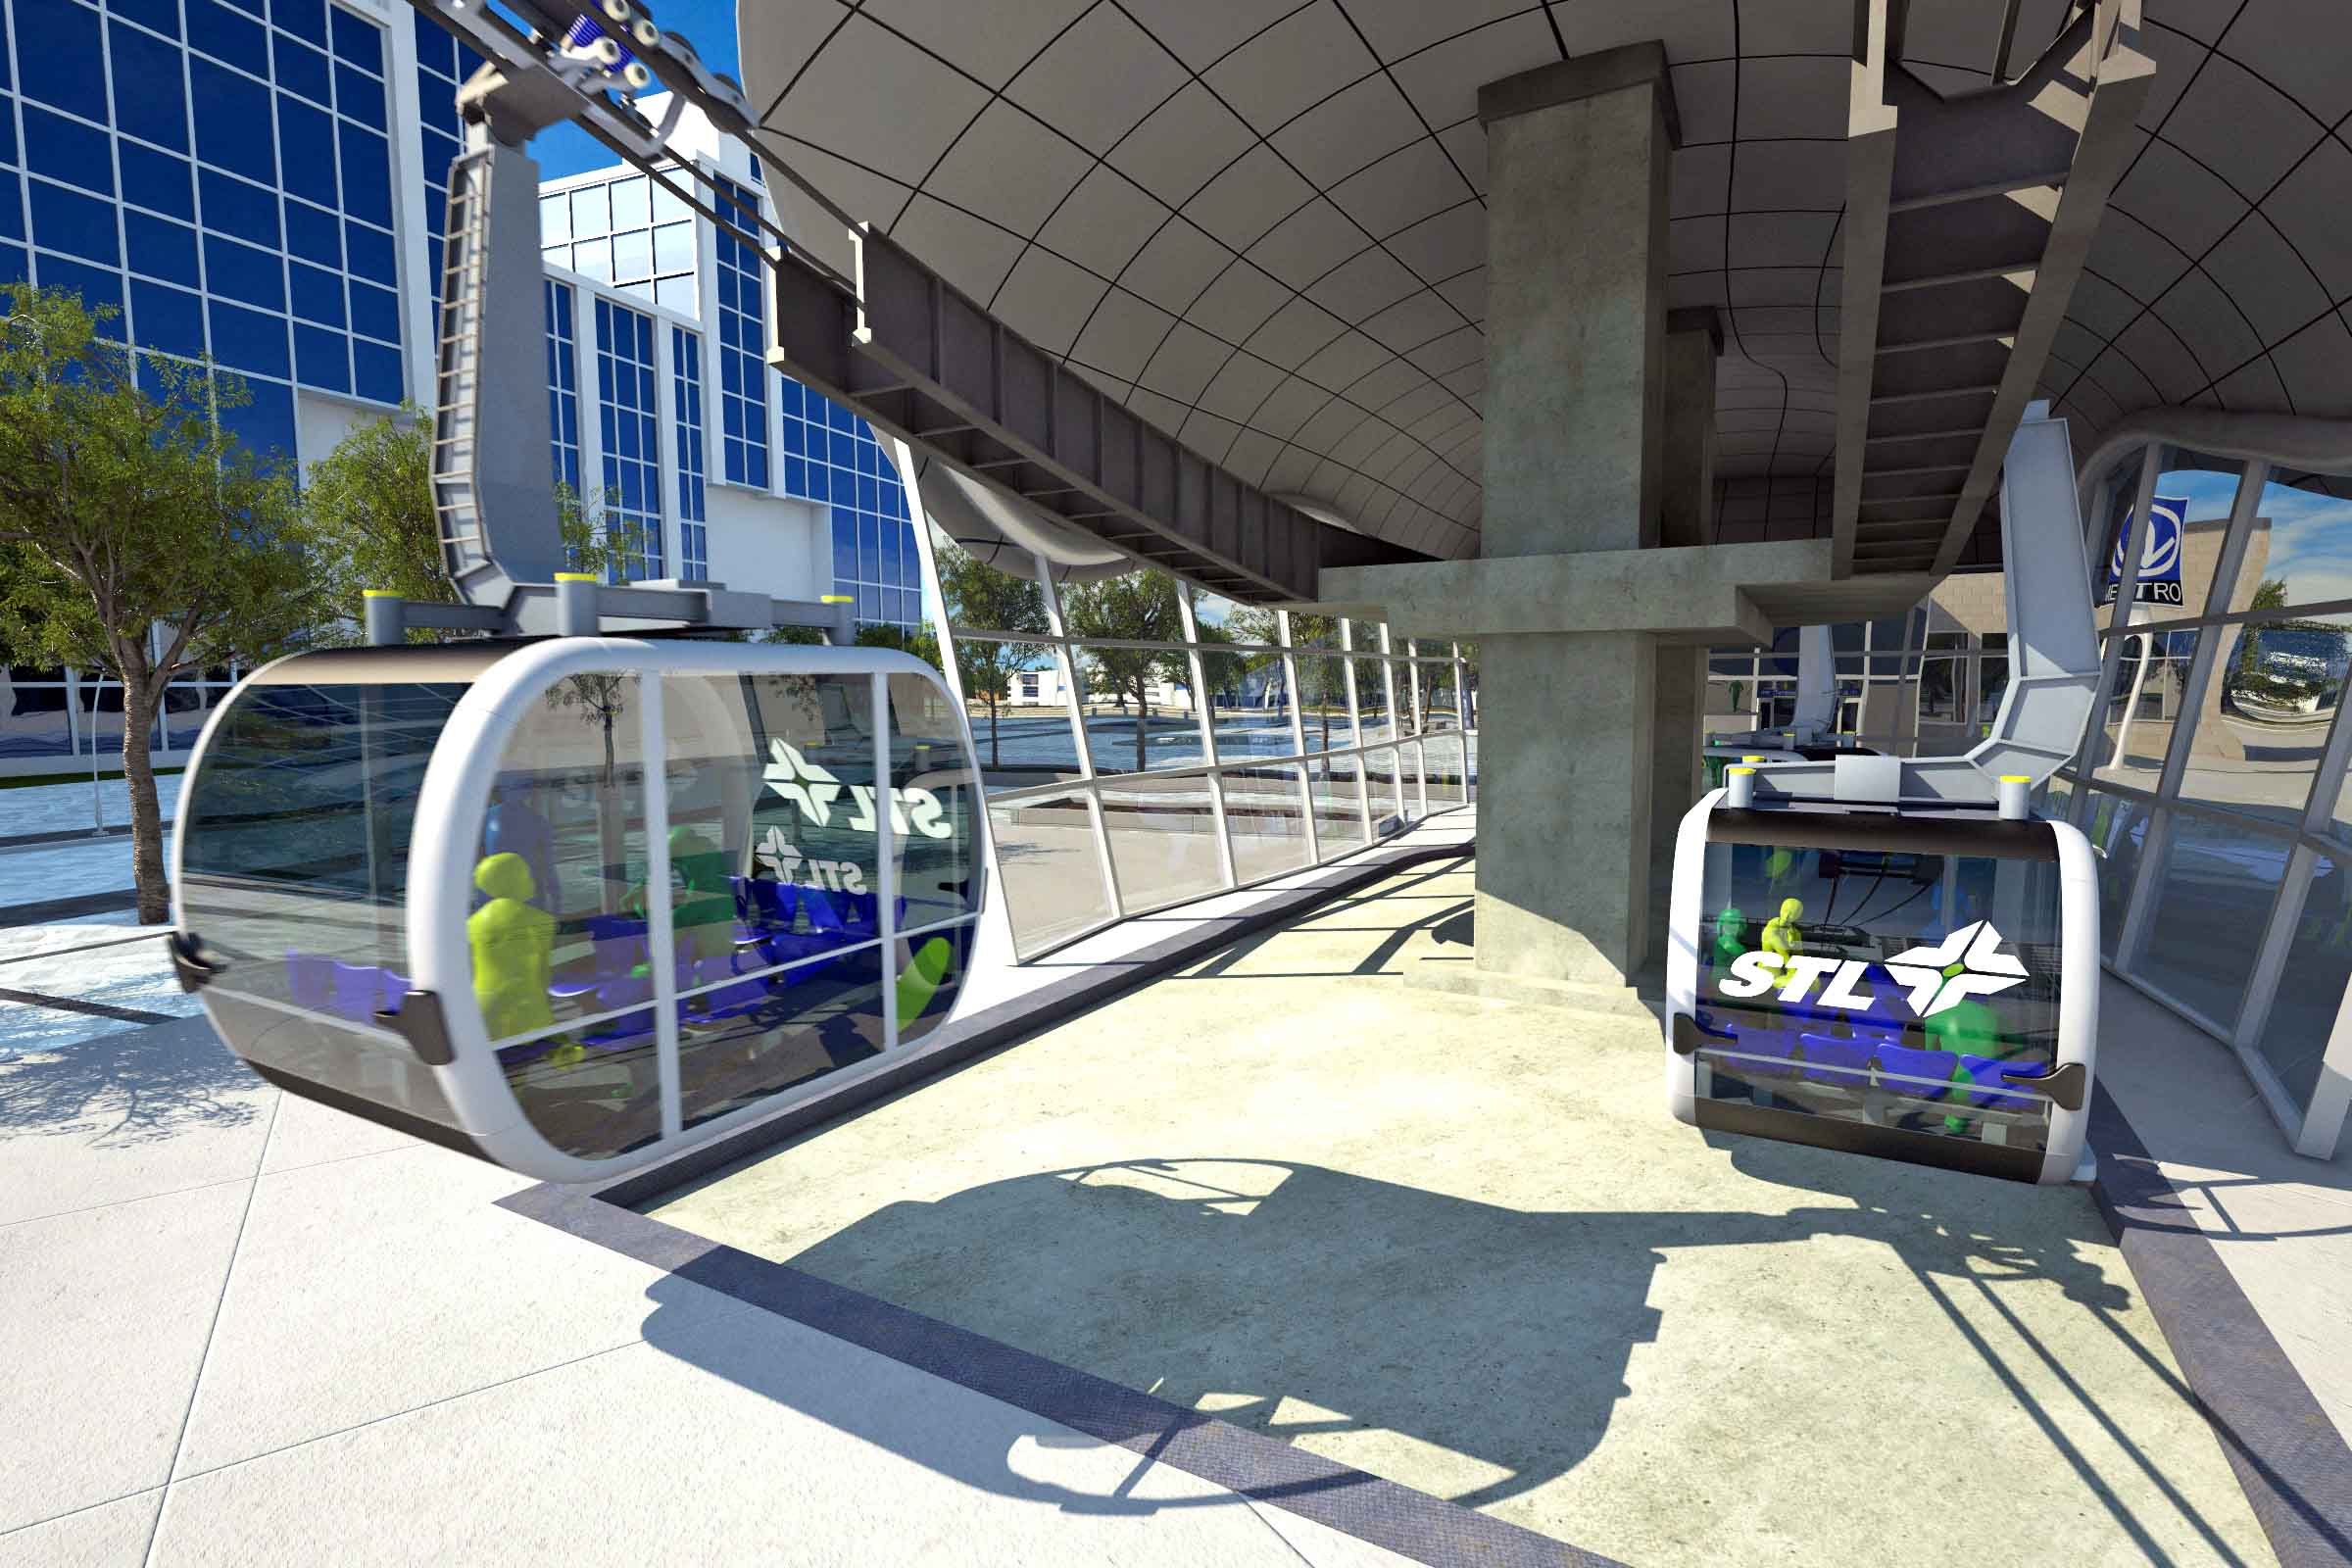 Laval's surface tram project recalls abandoned 'elevated' tram plan